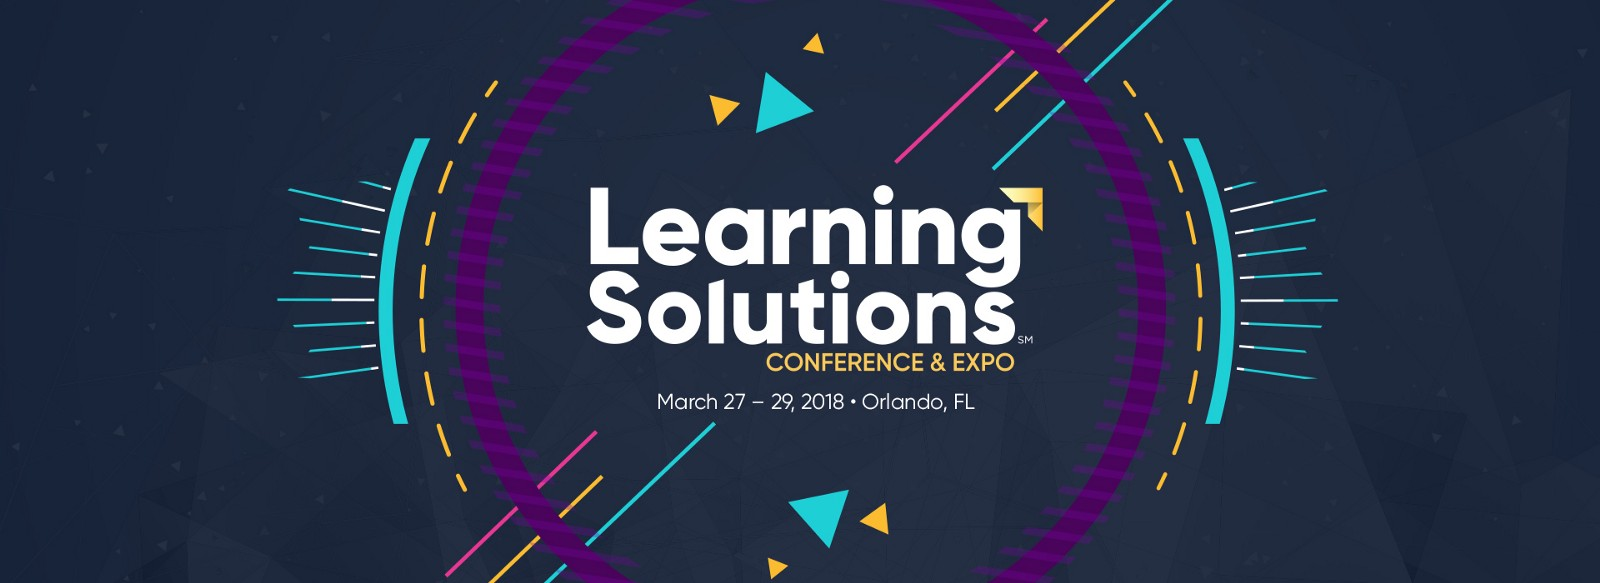 Elearning Conferences In 2018 Zipboard